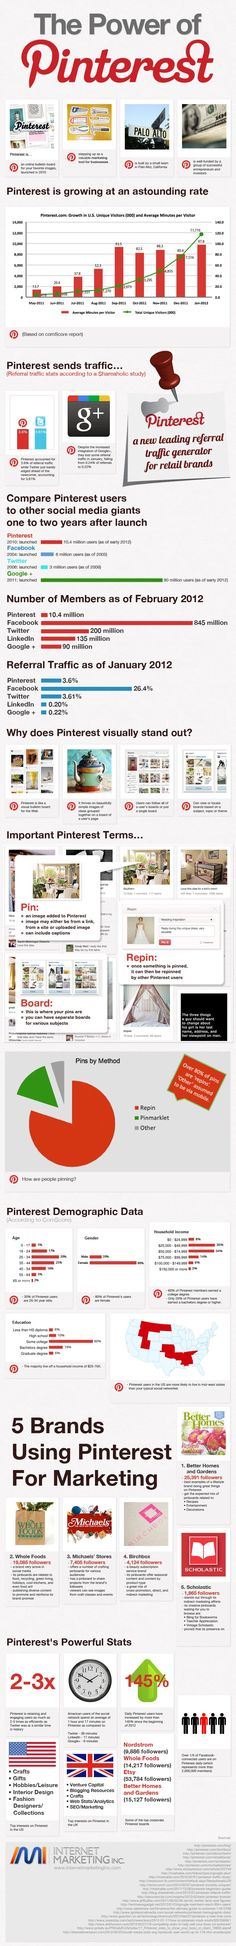 Business Insider infographic on the business of Pinterest